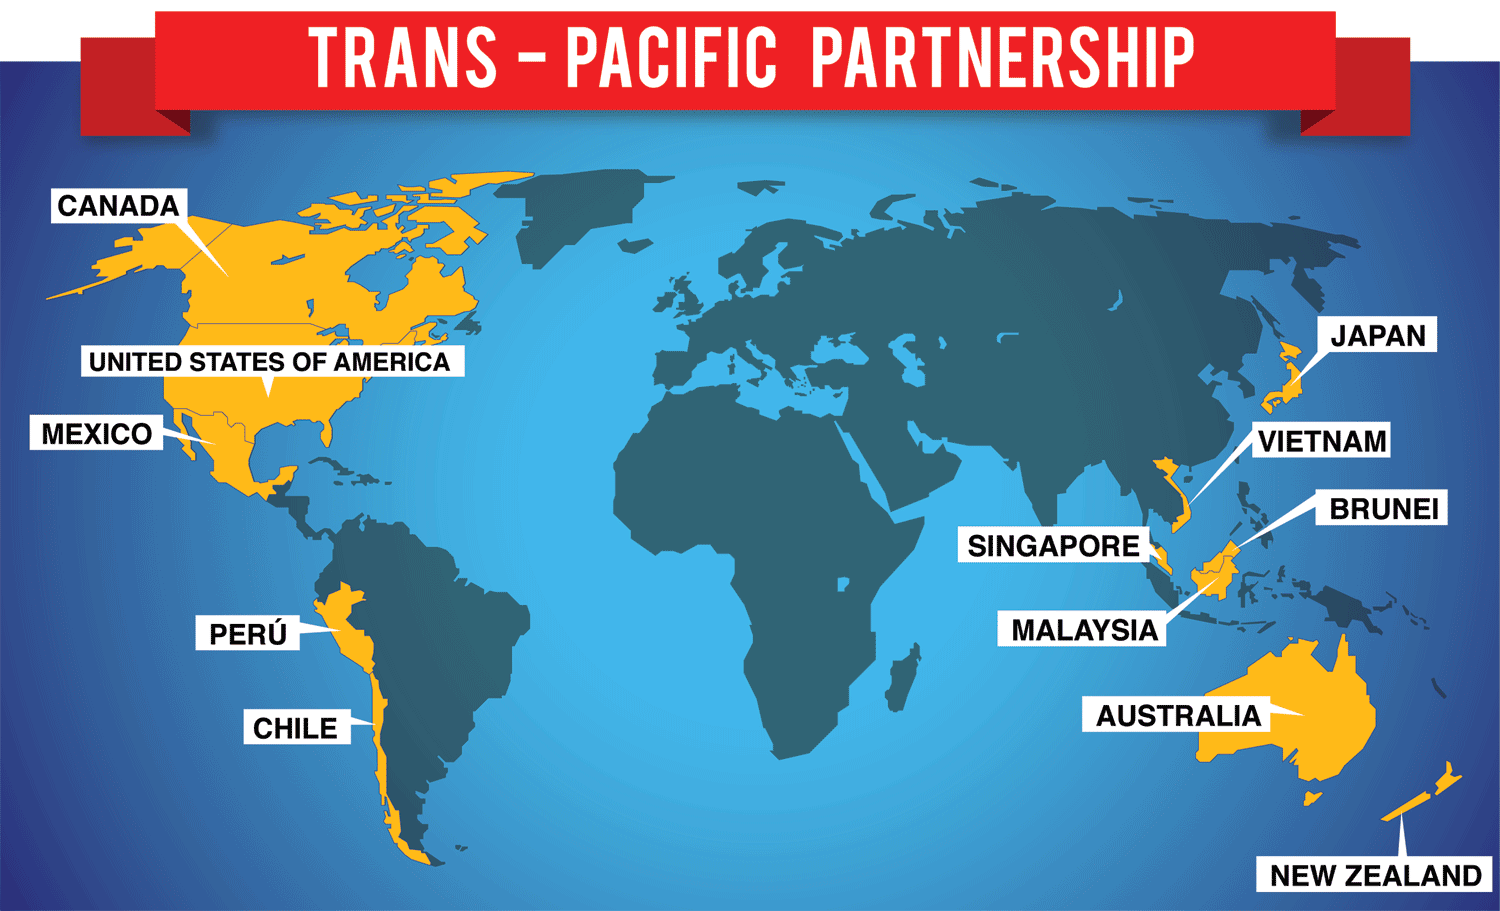 Trans-Pacific Partnership provides strong trade policy